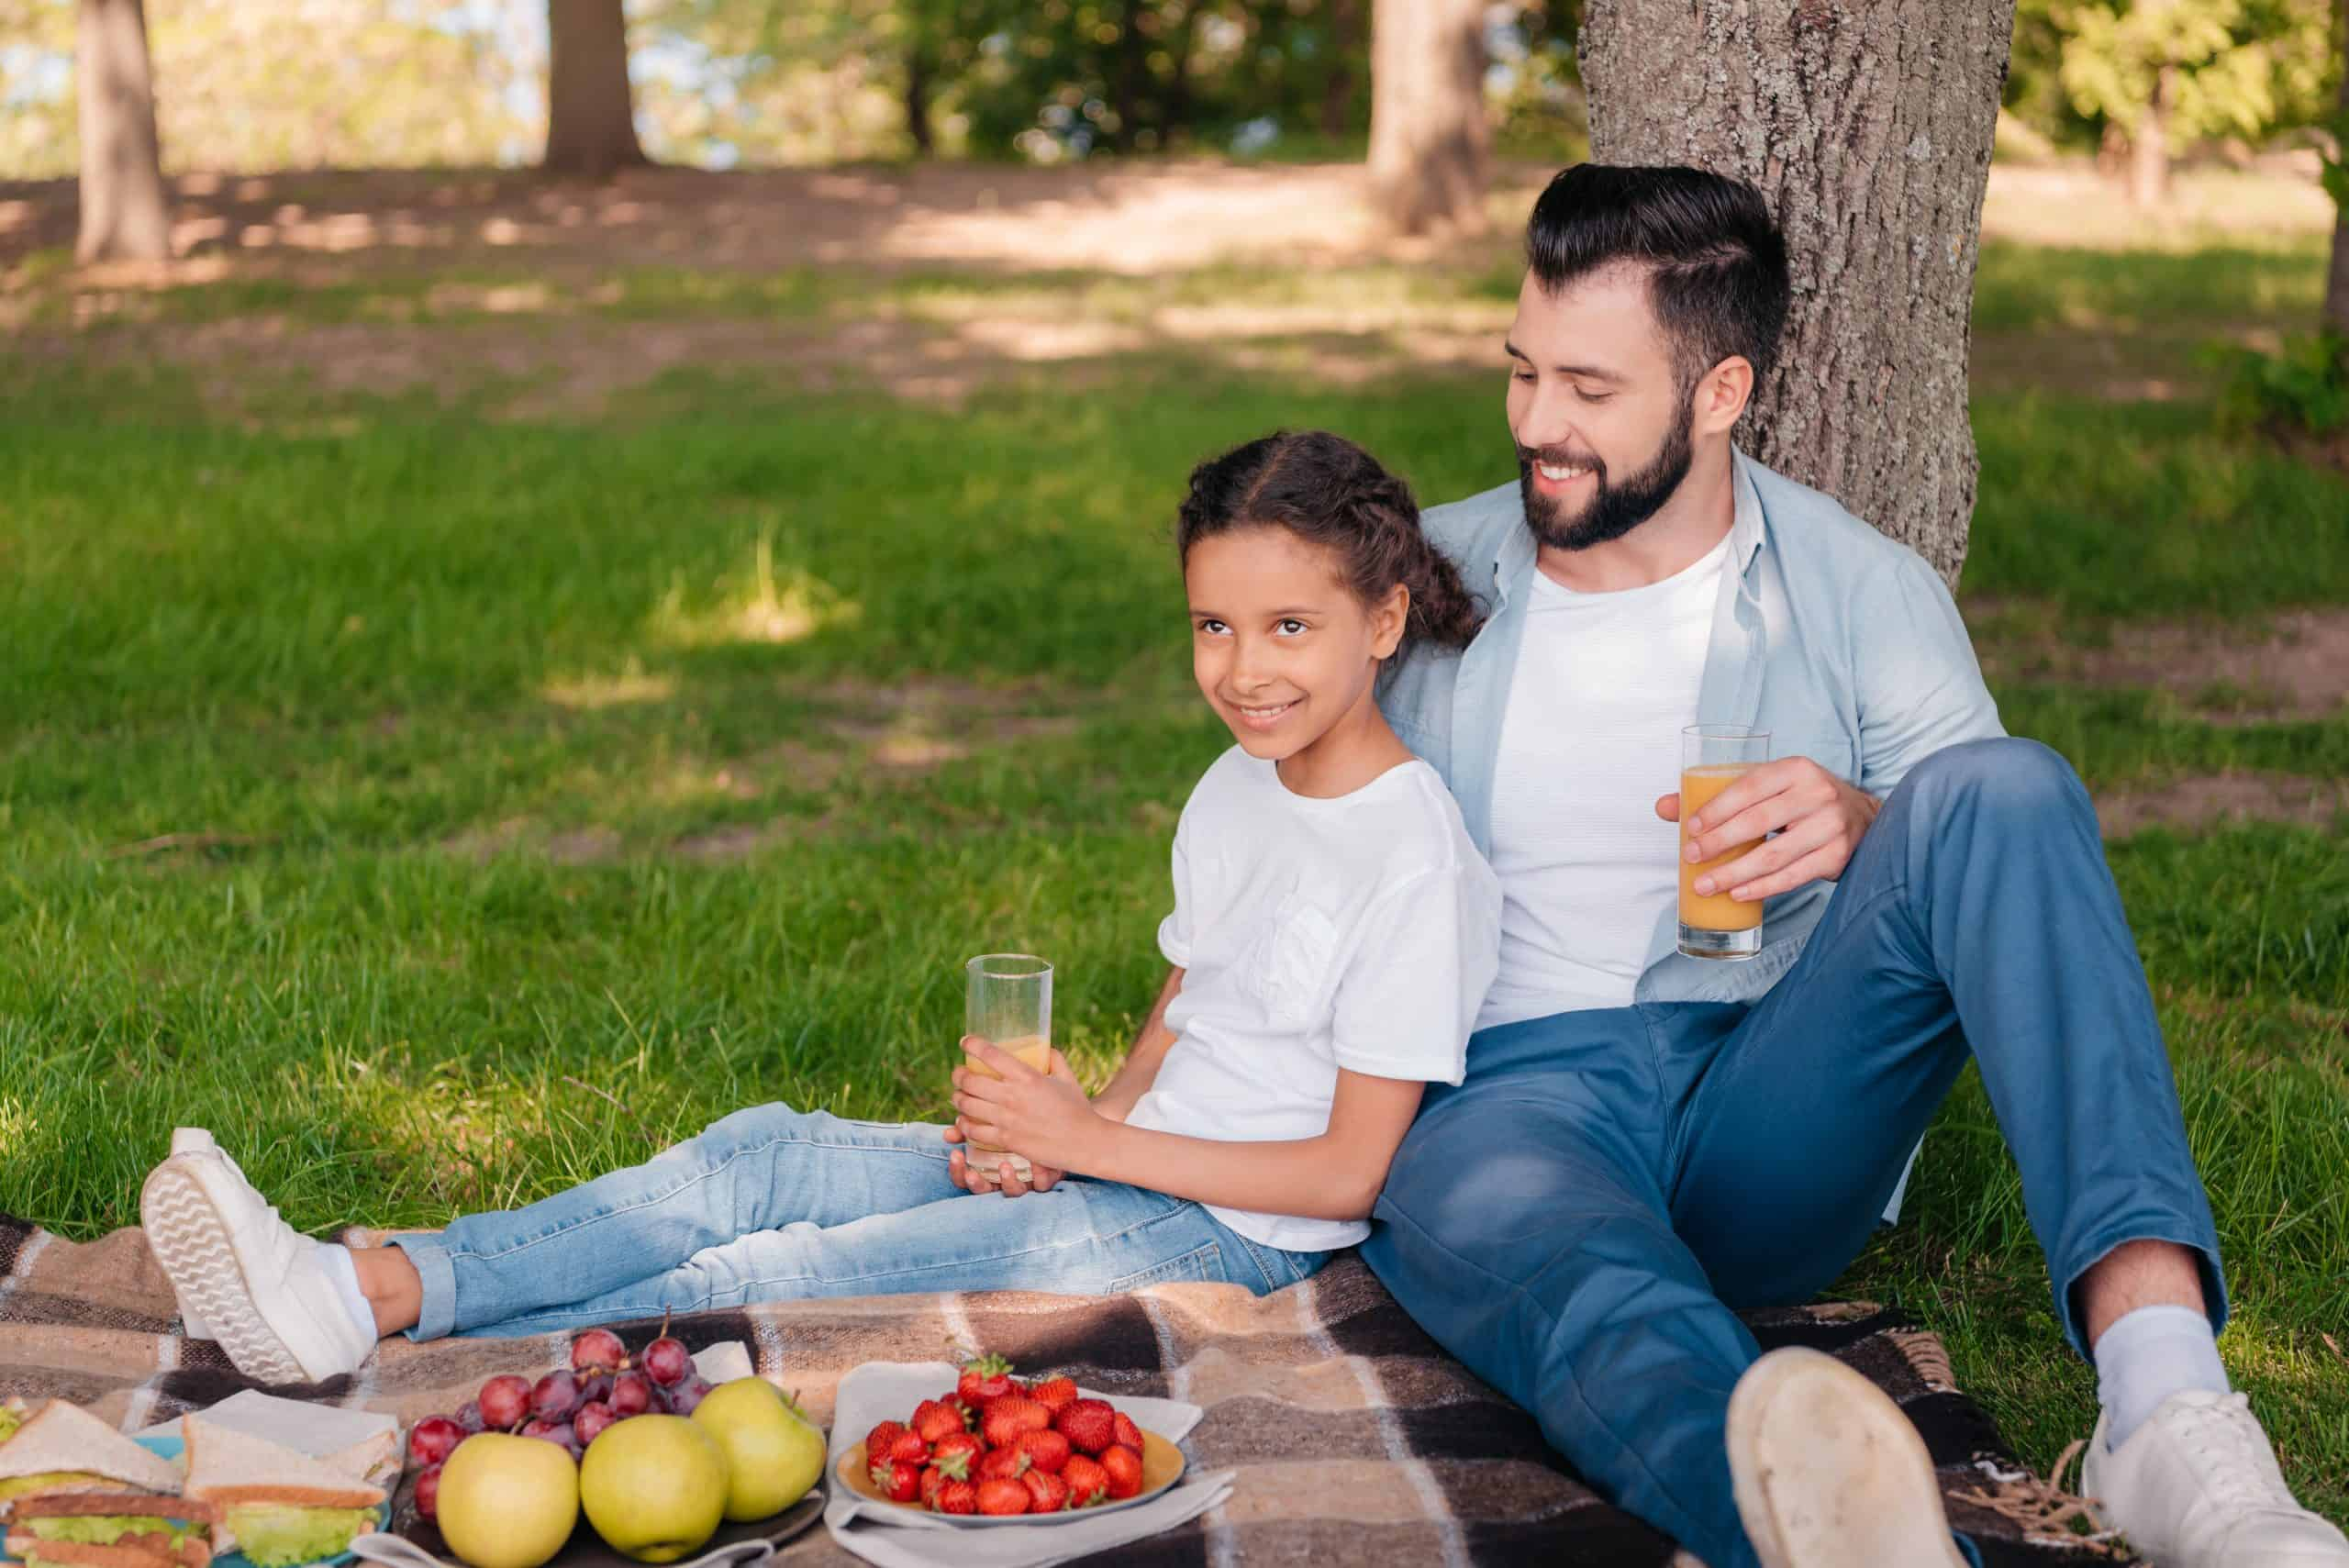 Perfect summer picnic - dad and young girl having a picnic on a blanket with fruit and sandwiches